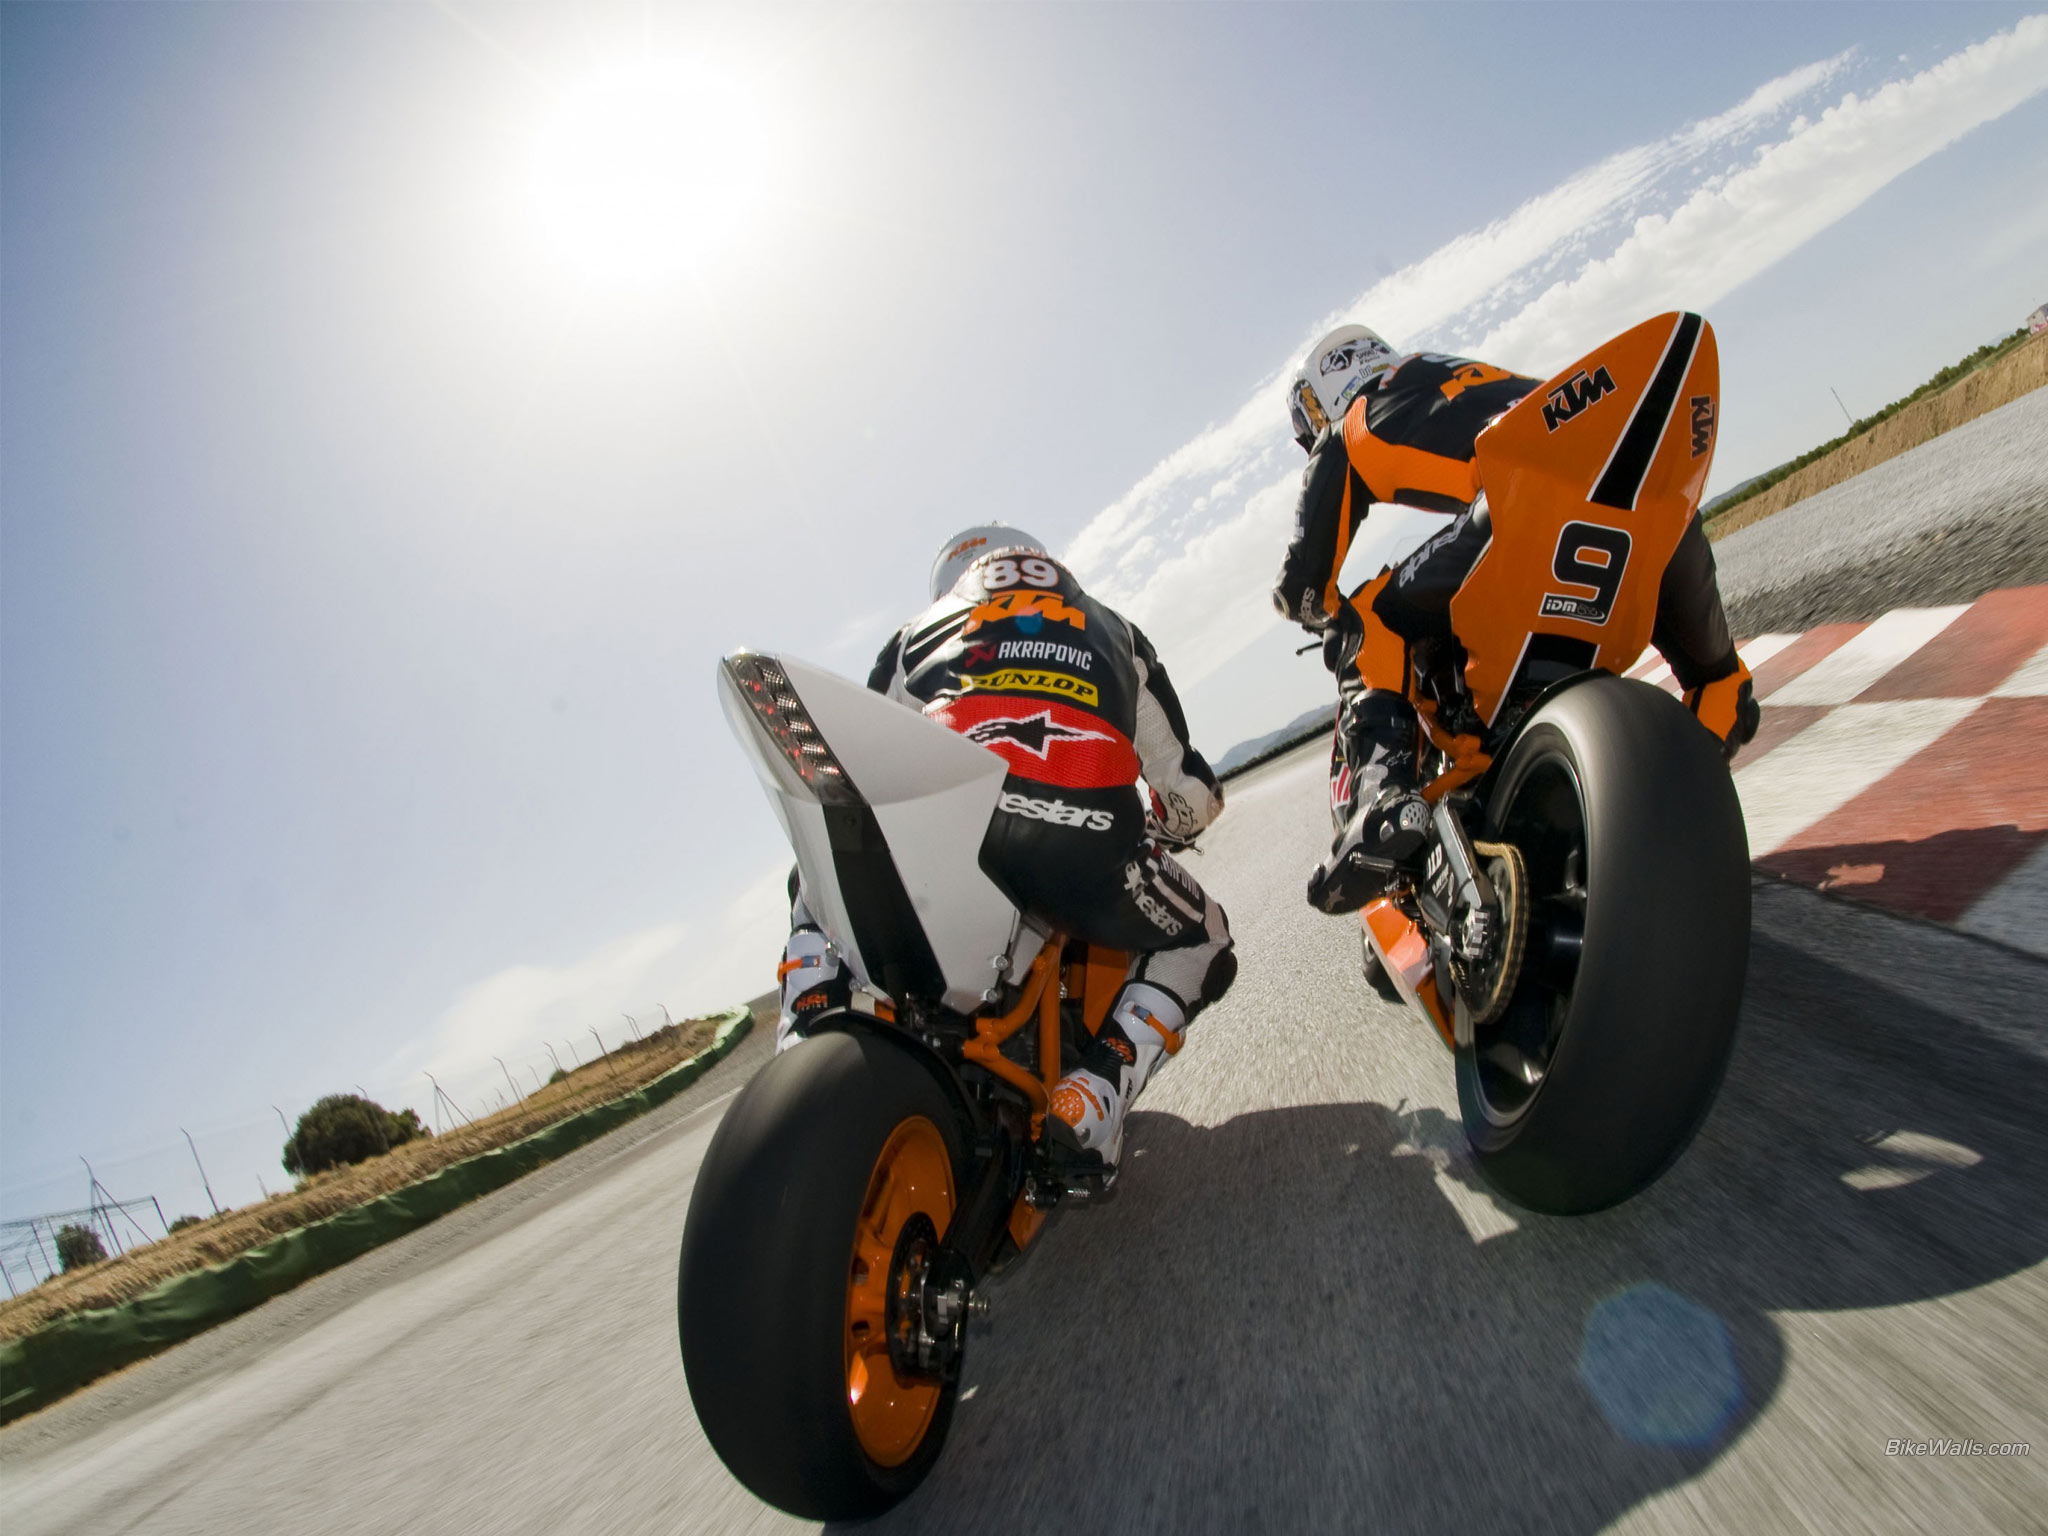 2048x1536 - KTM RC8 Wallpapers 13